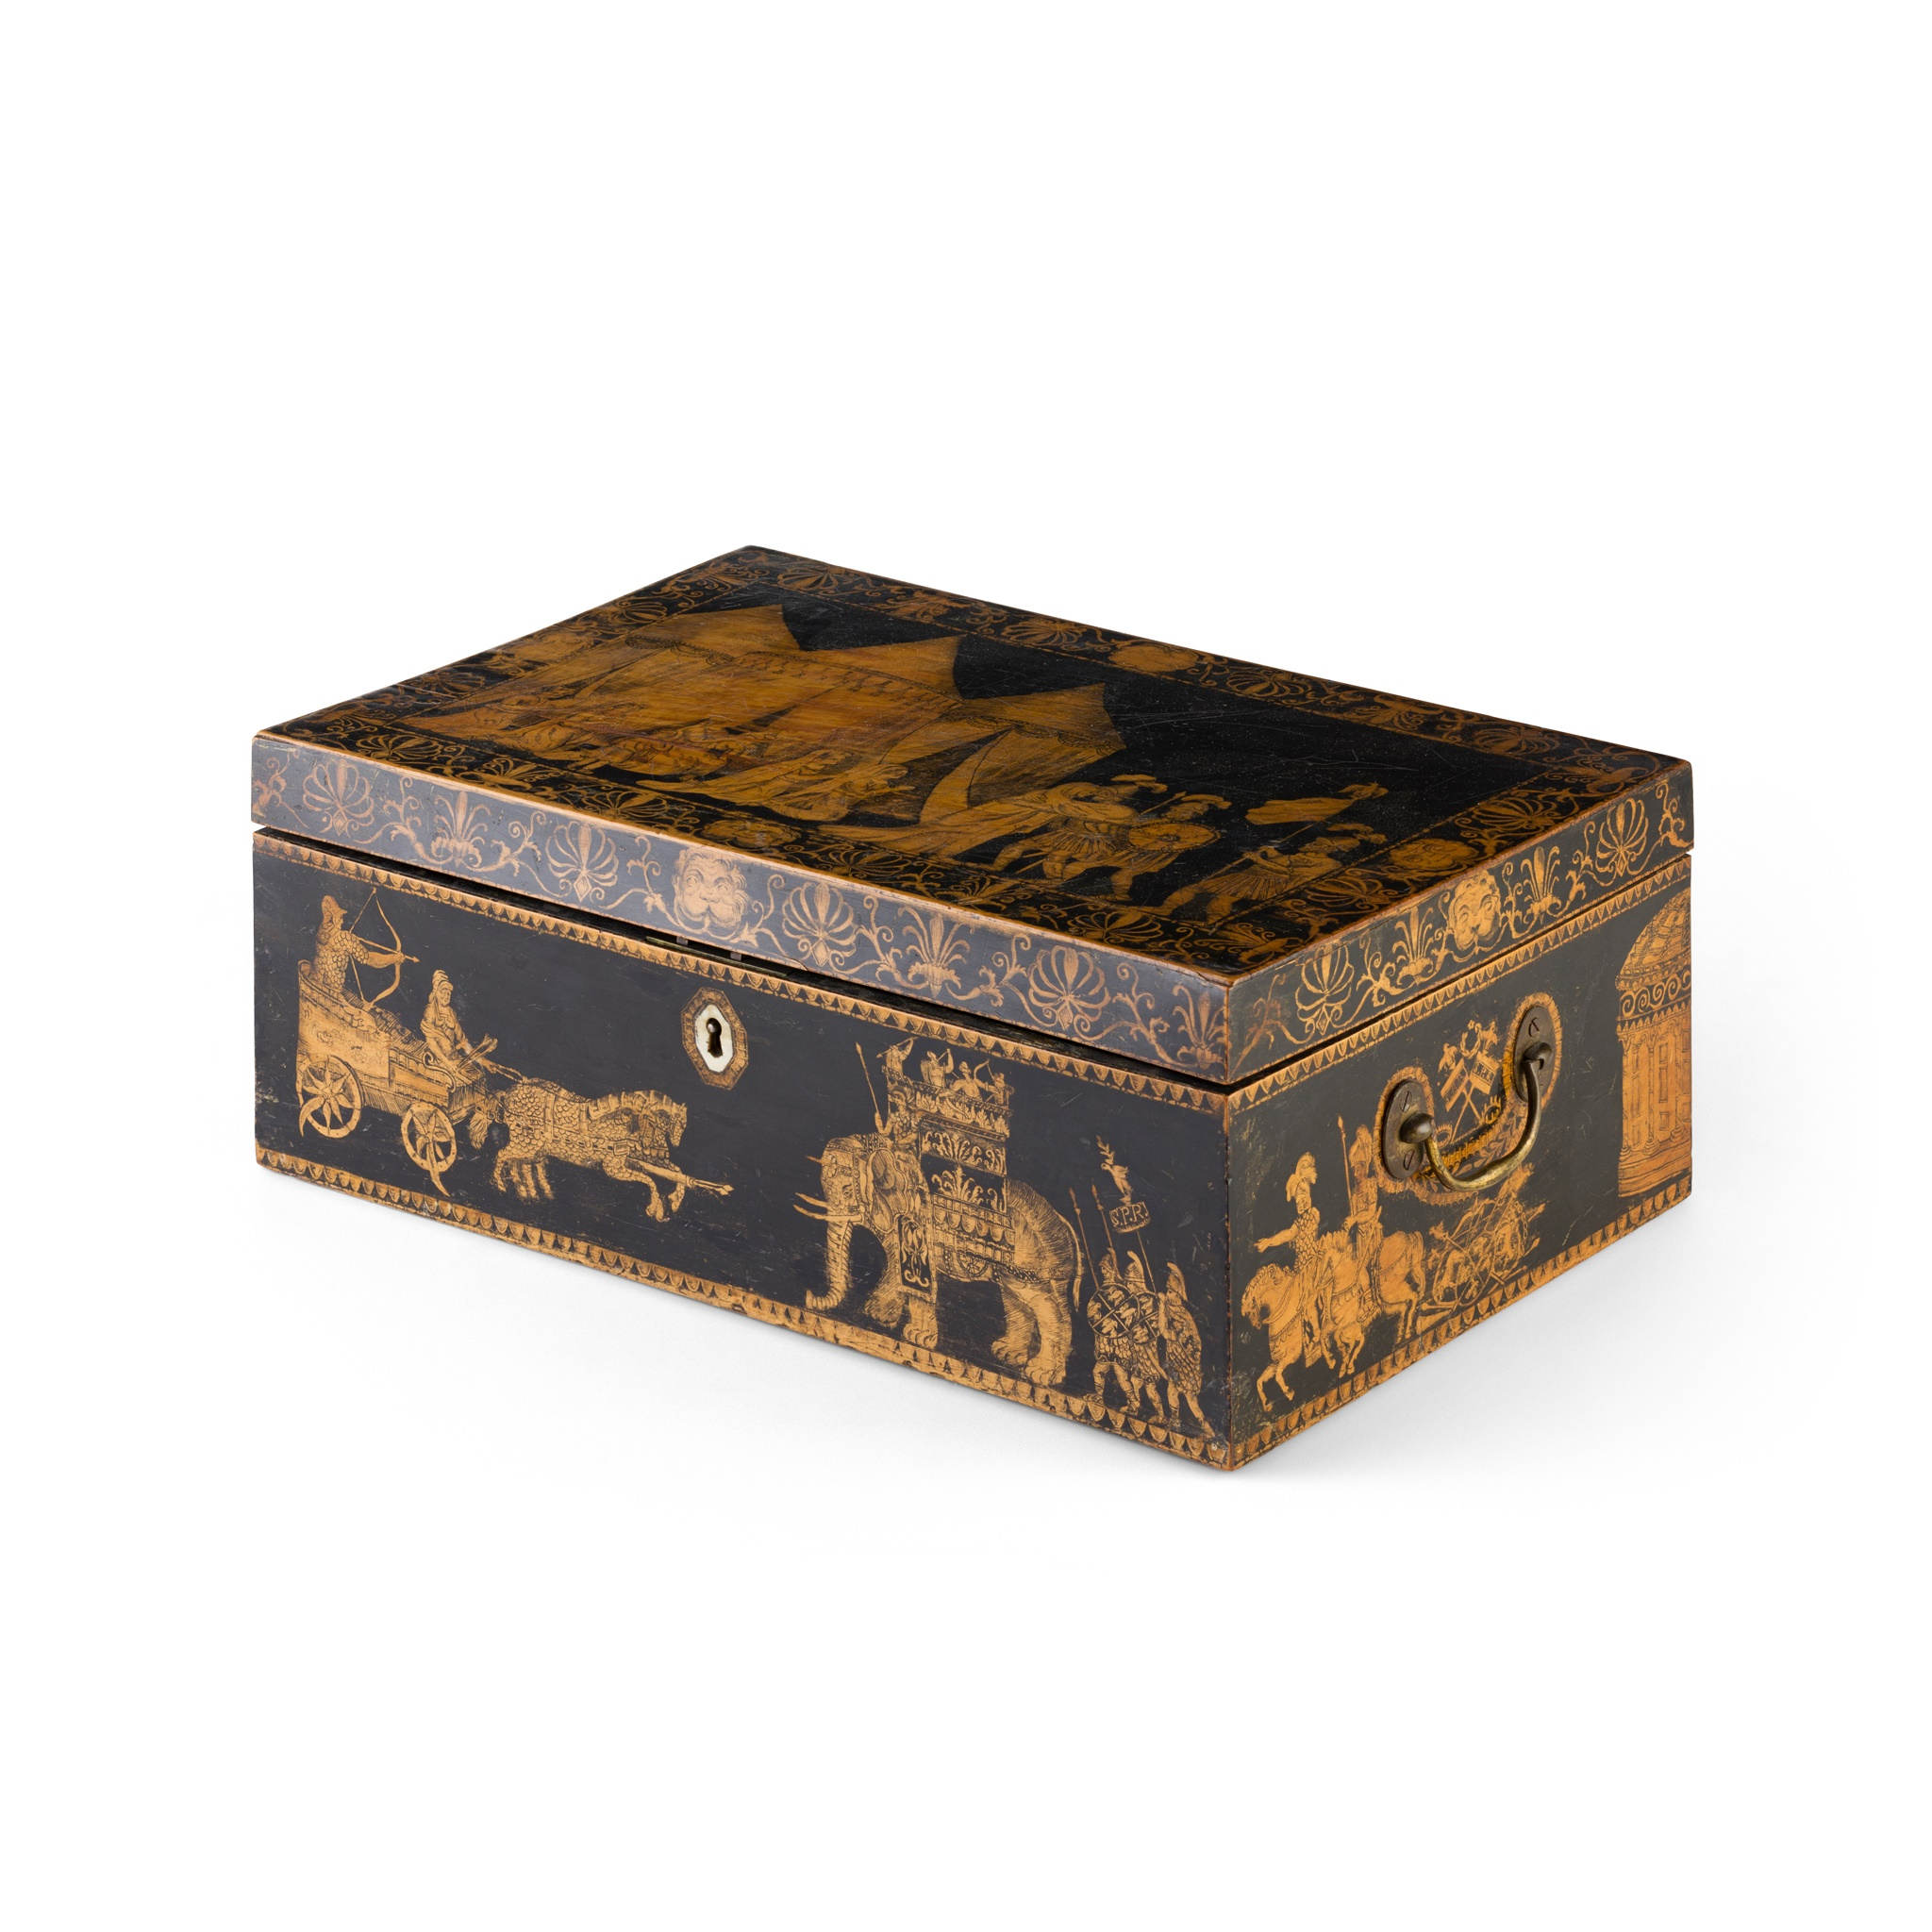 Y REGENCY EBONISED AND PENWORK BOX EARLY 19TH CENTURY